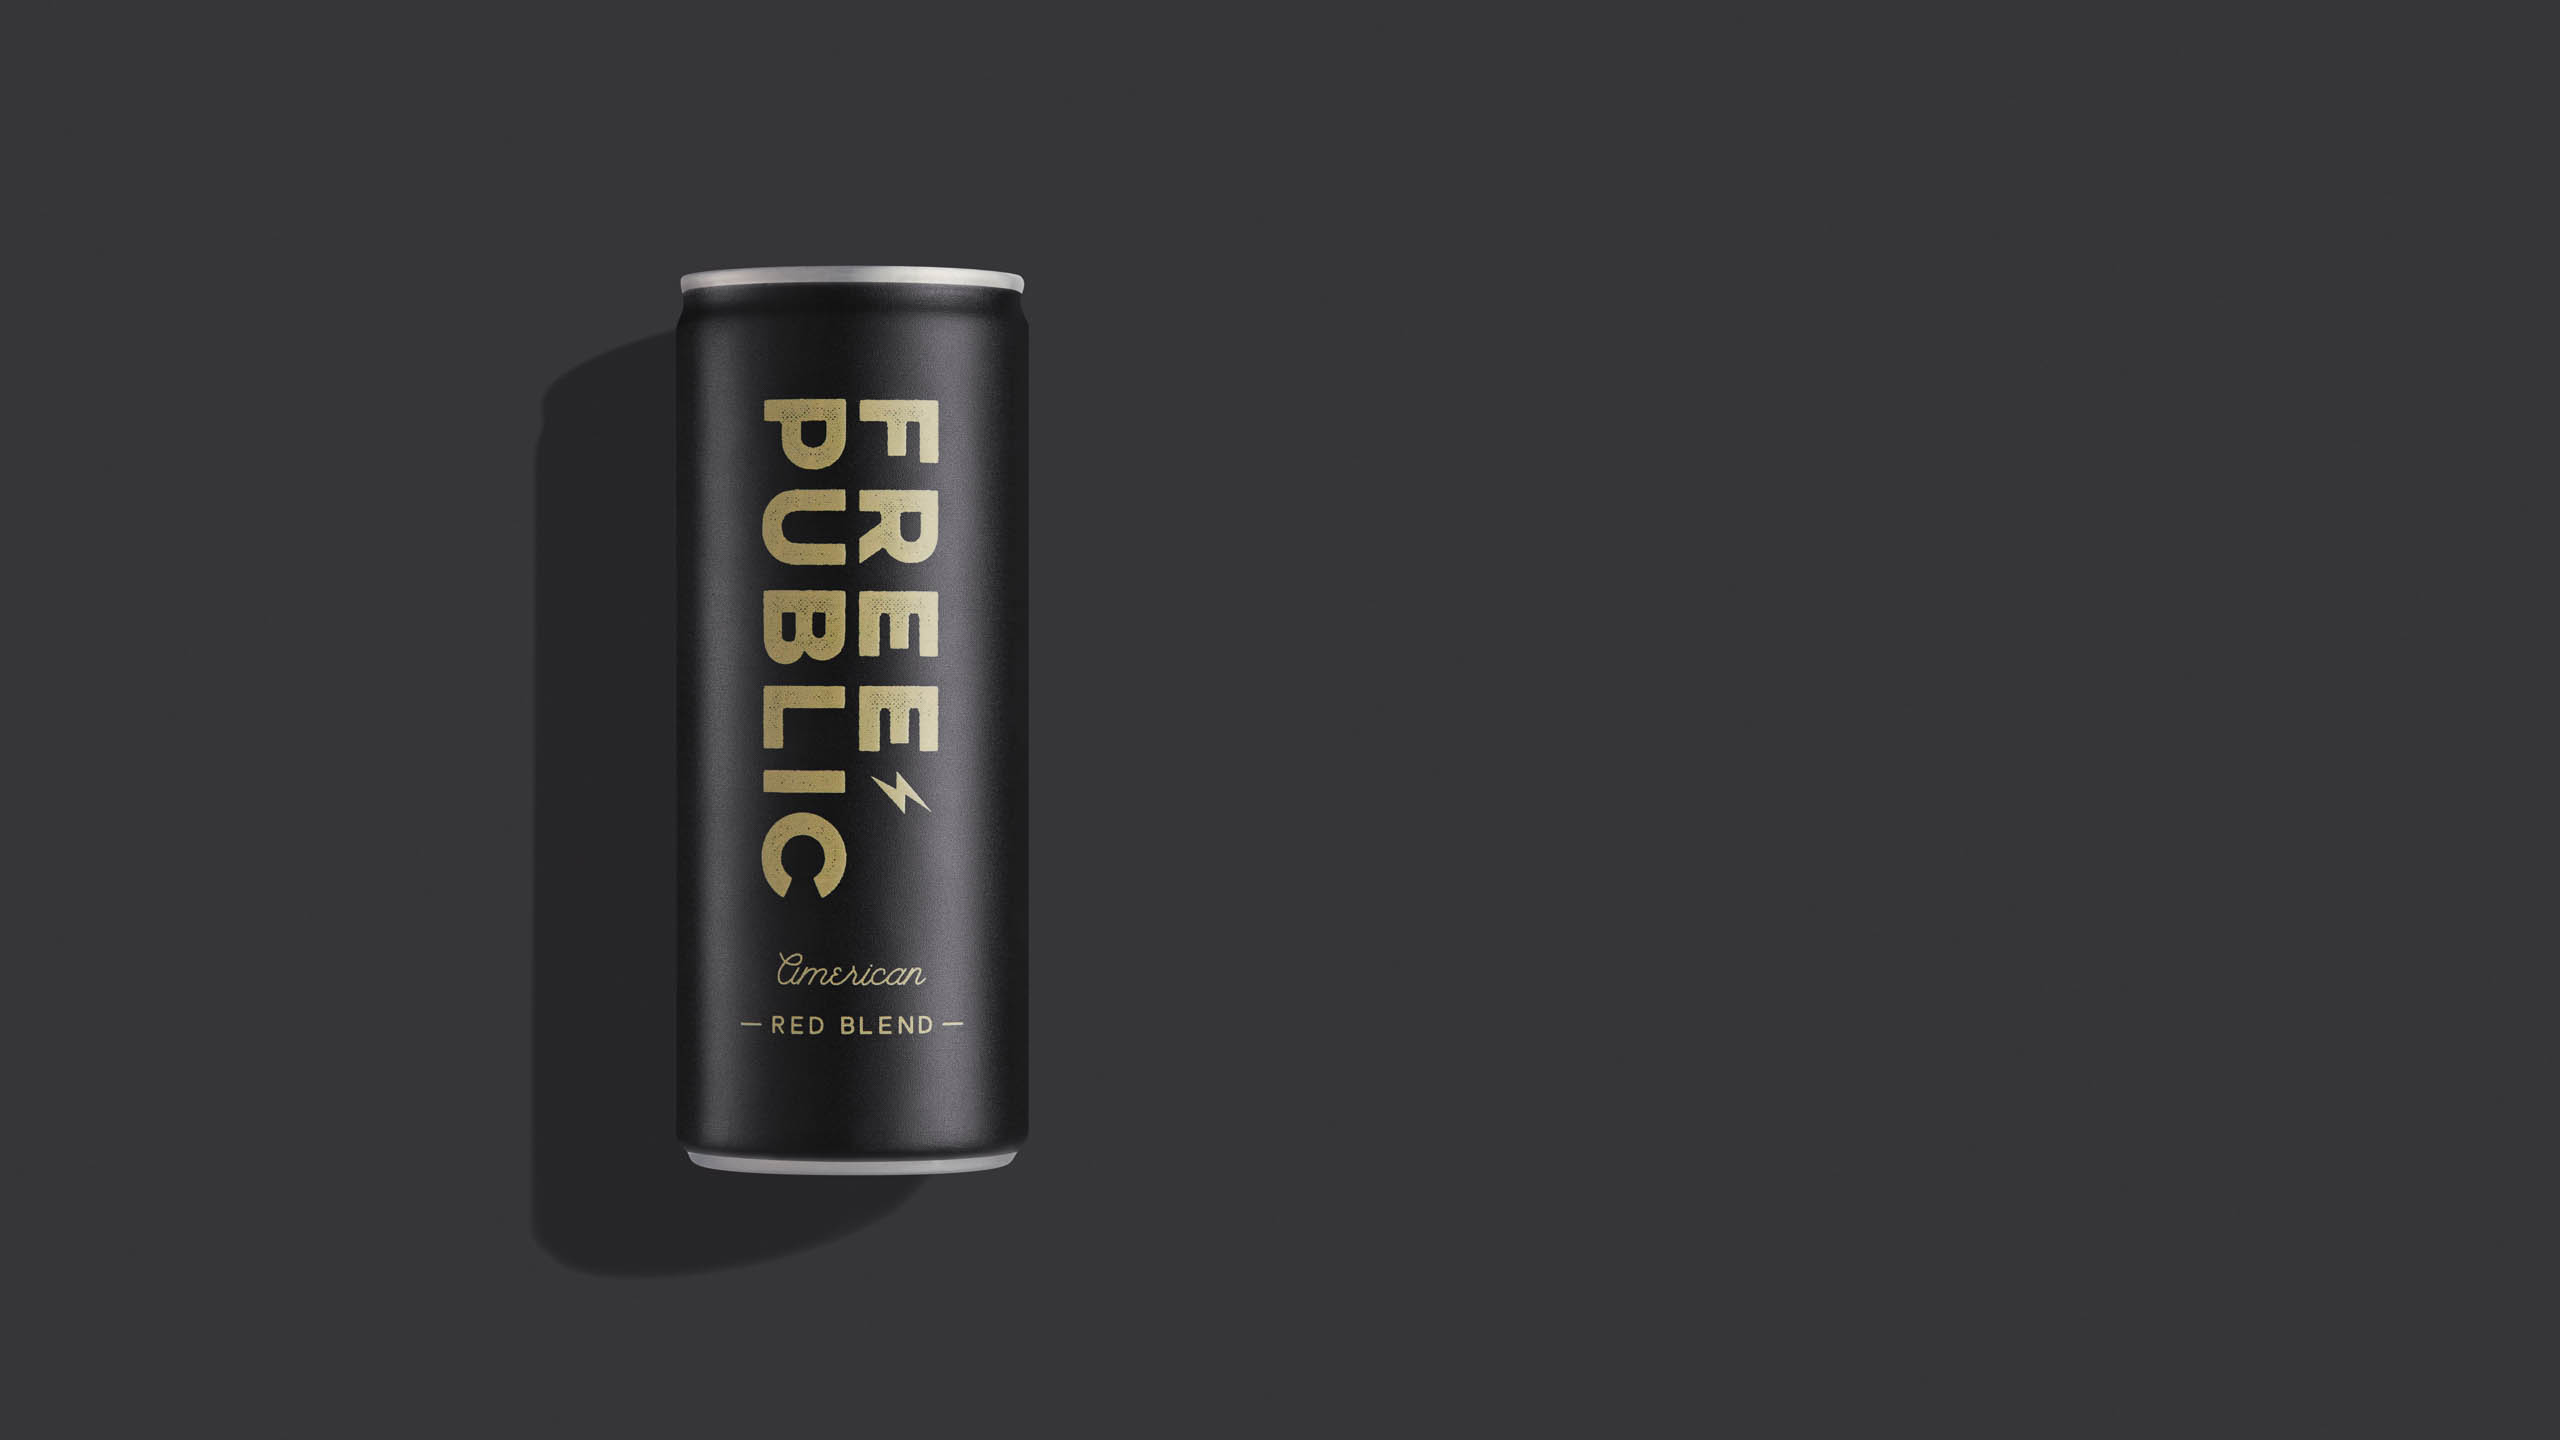 Free Public canned Red Blend Wine by Steve Temple Photography